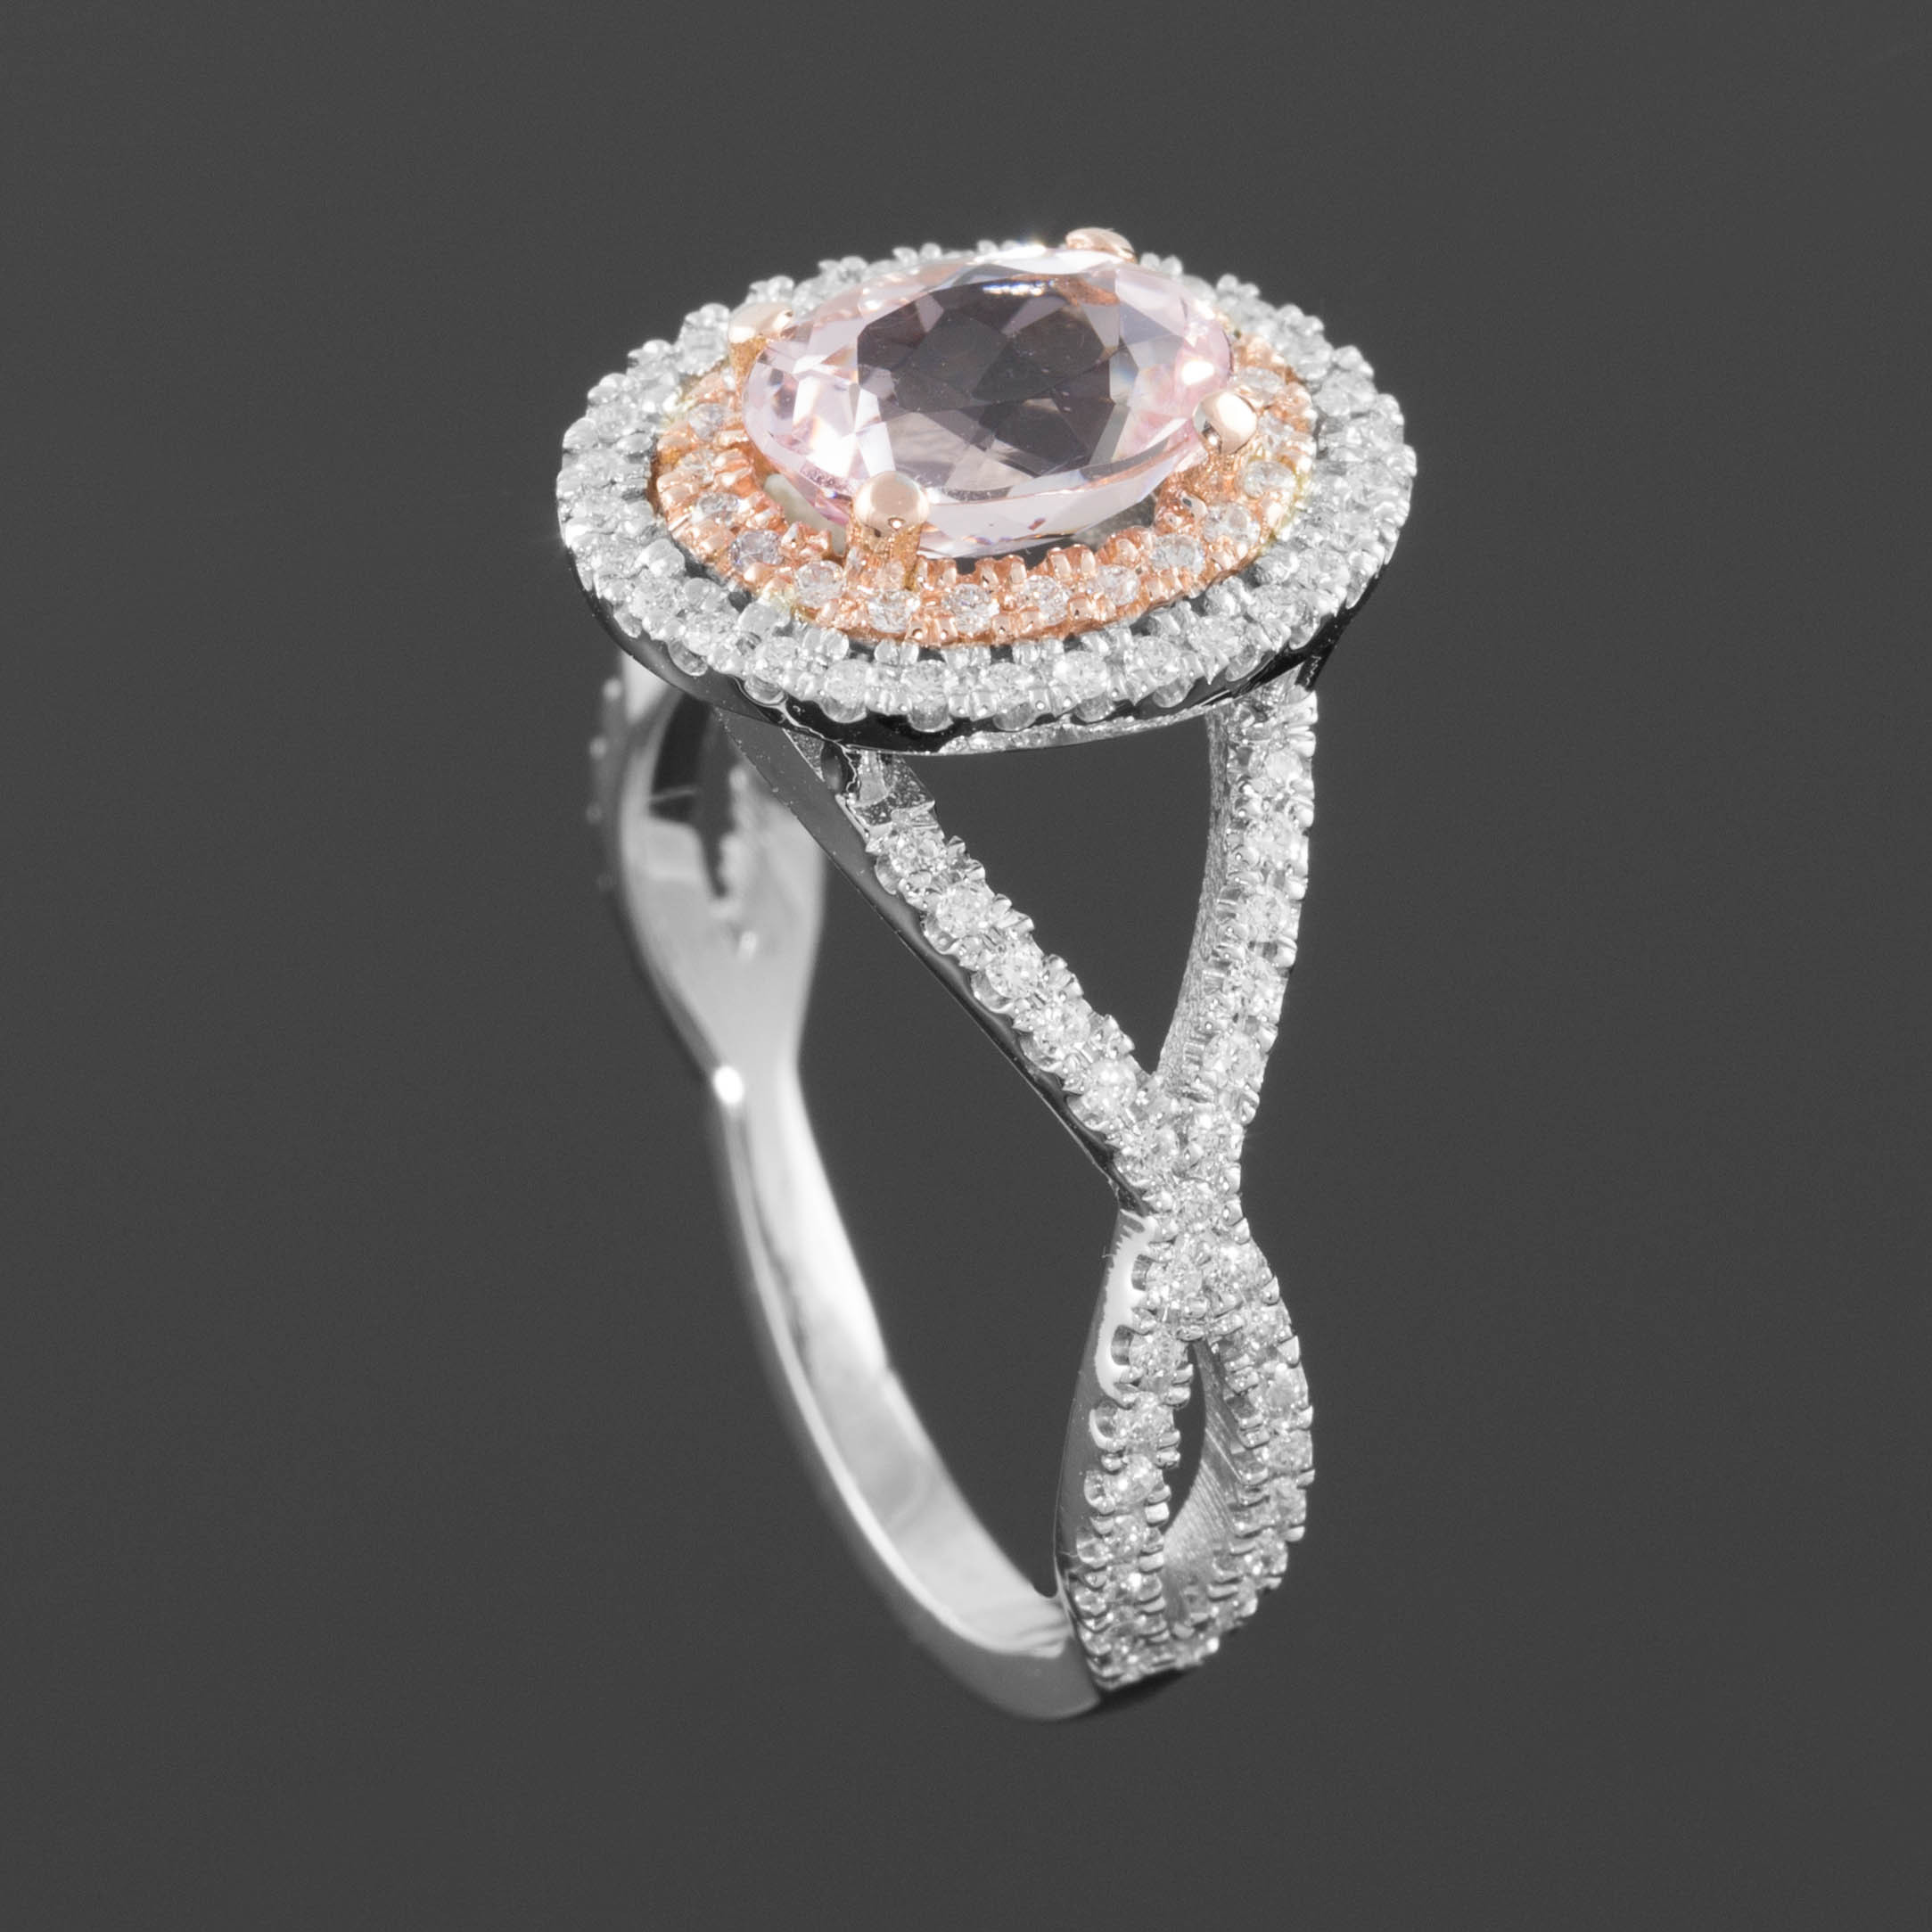 Jewelry, white, pink, silver, gold, Engagement Rings, Ring, Engagement, Diamond, Inspiration board, Twisted, Shank, Morganite